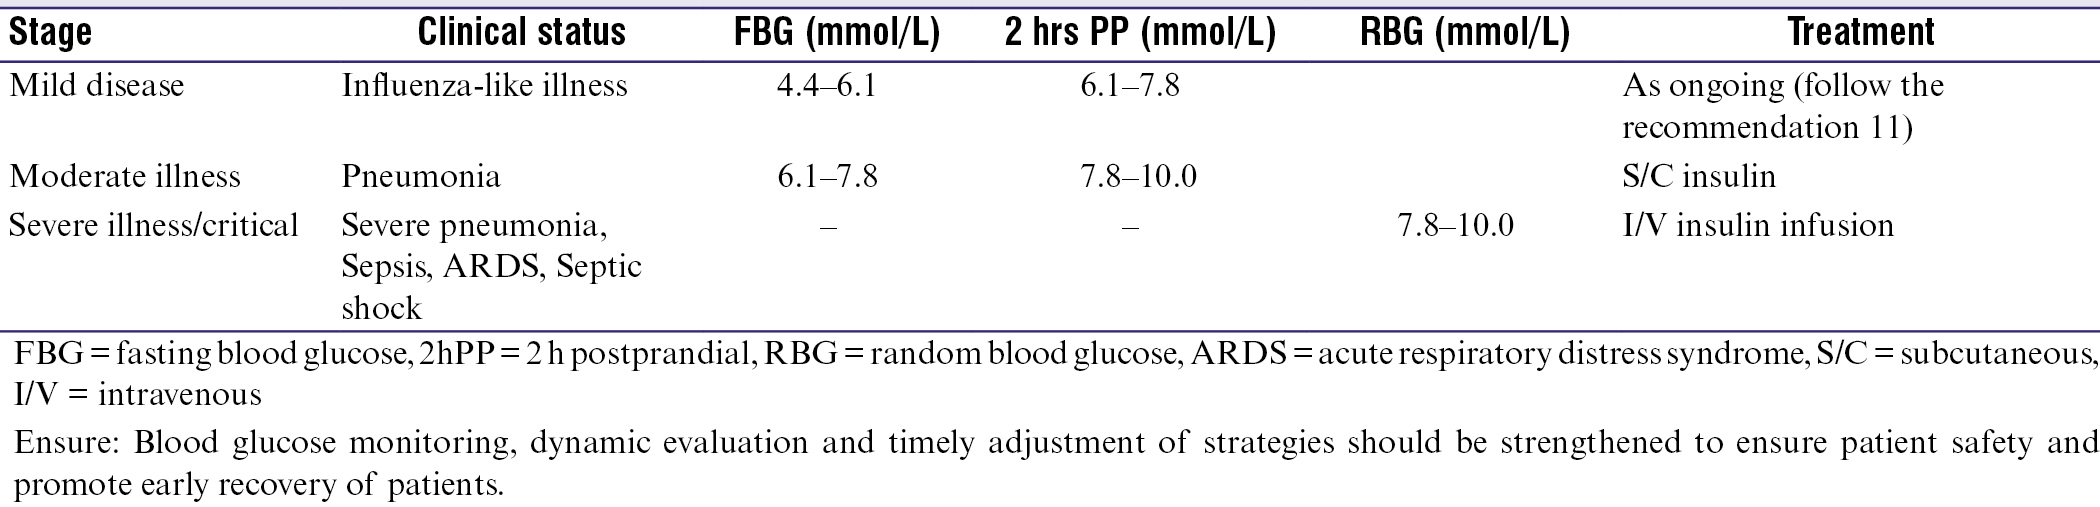 Table 3: Treatment target and drug management of diabetes with COVID-19<sup>[21],[22]</sup>